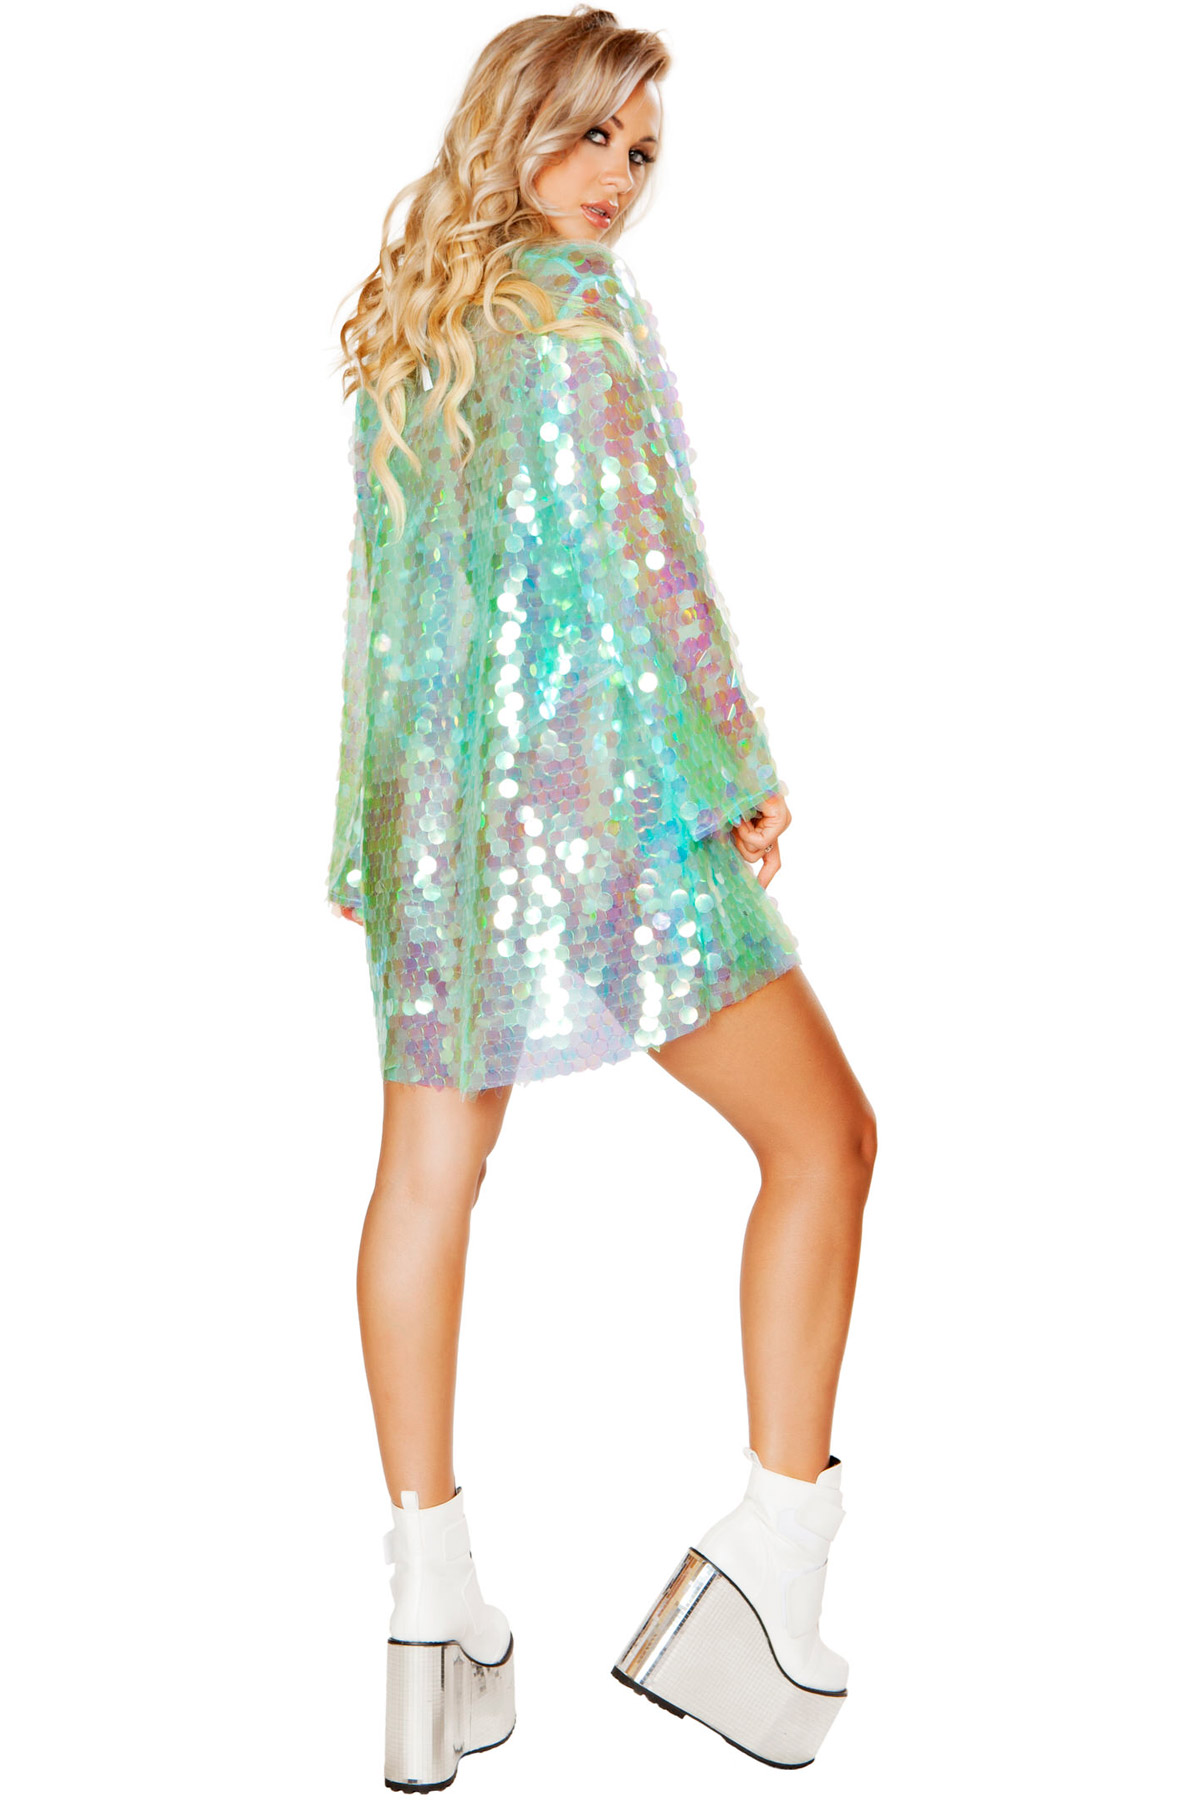 One Clubwear Fun Adulto Paillettes Cute Robe Iridescent Donna Piece Party Jacket 8C5OwwqZnx